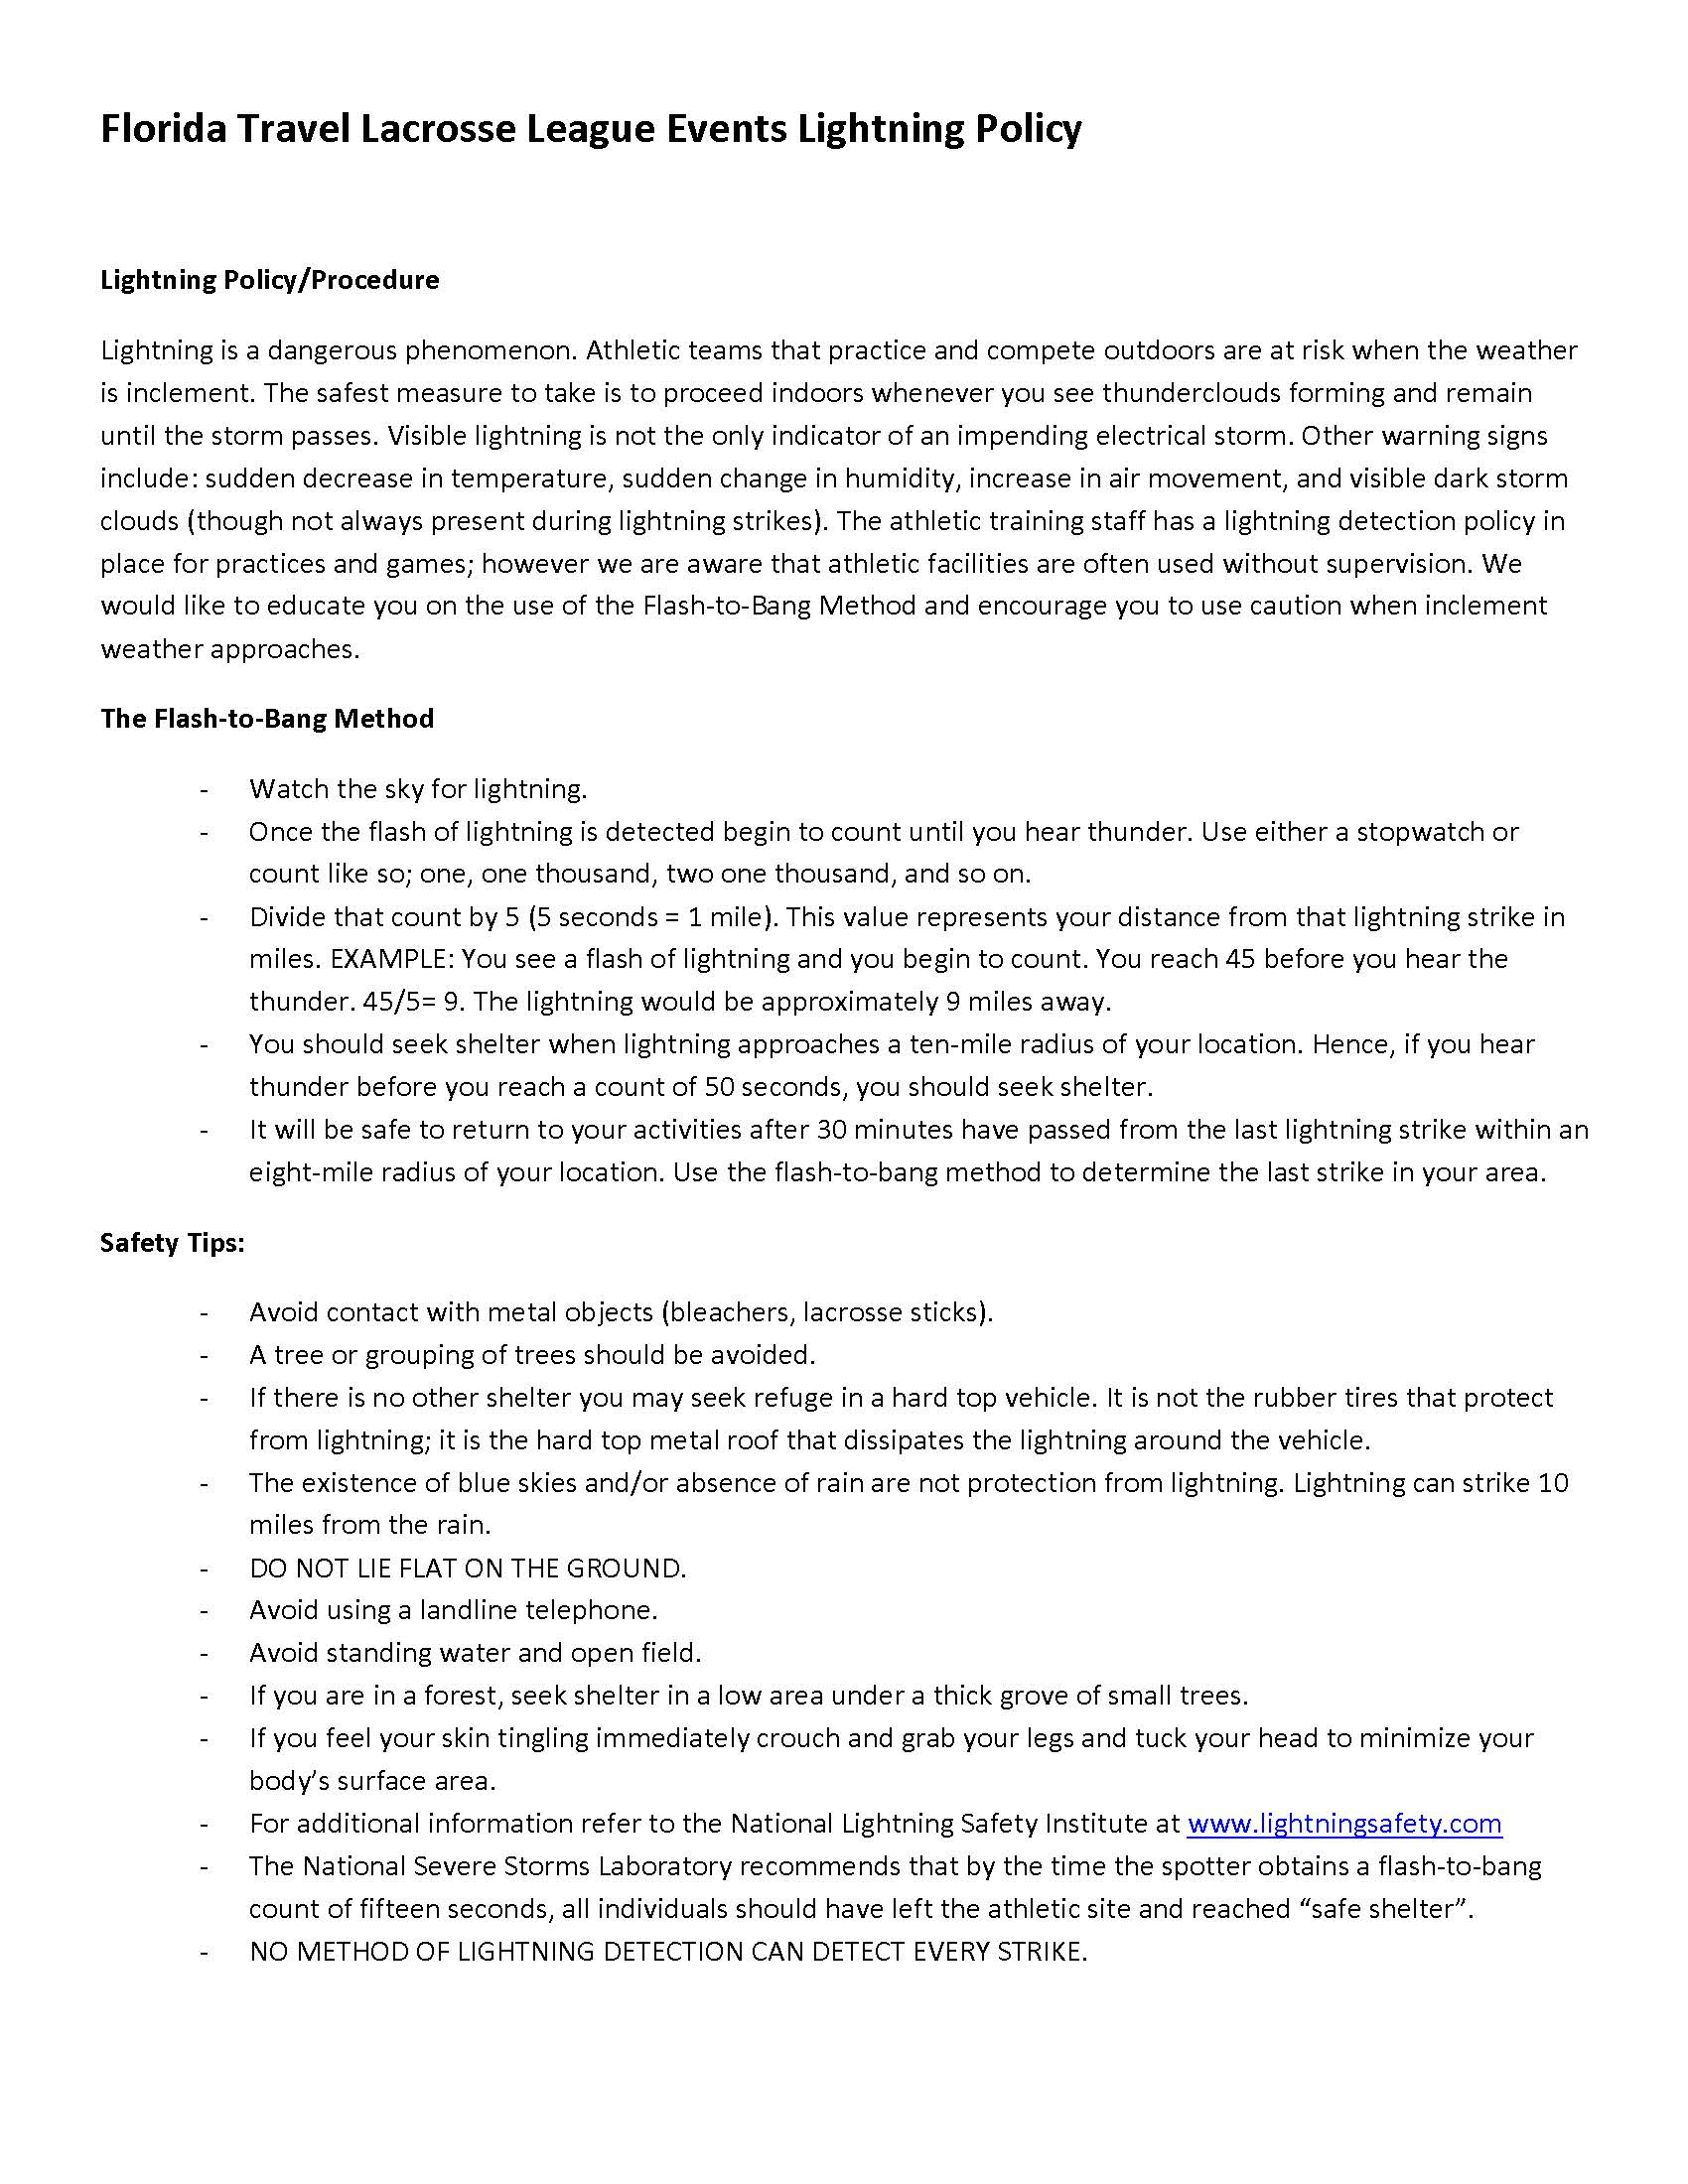 FTLL LIGHTENING POLICY PDF_Page_1